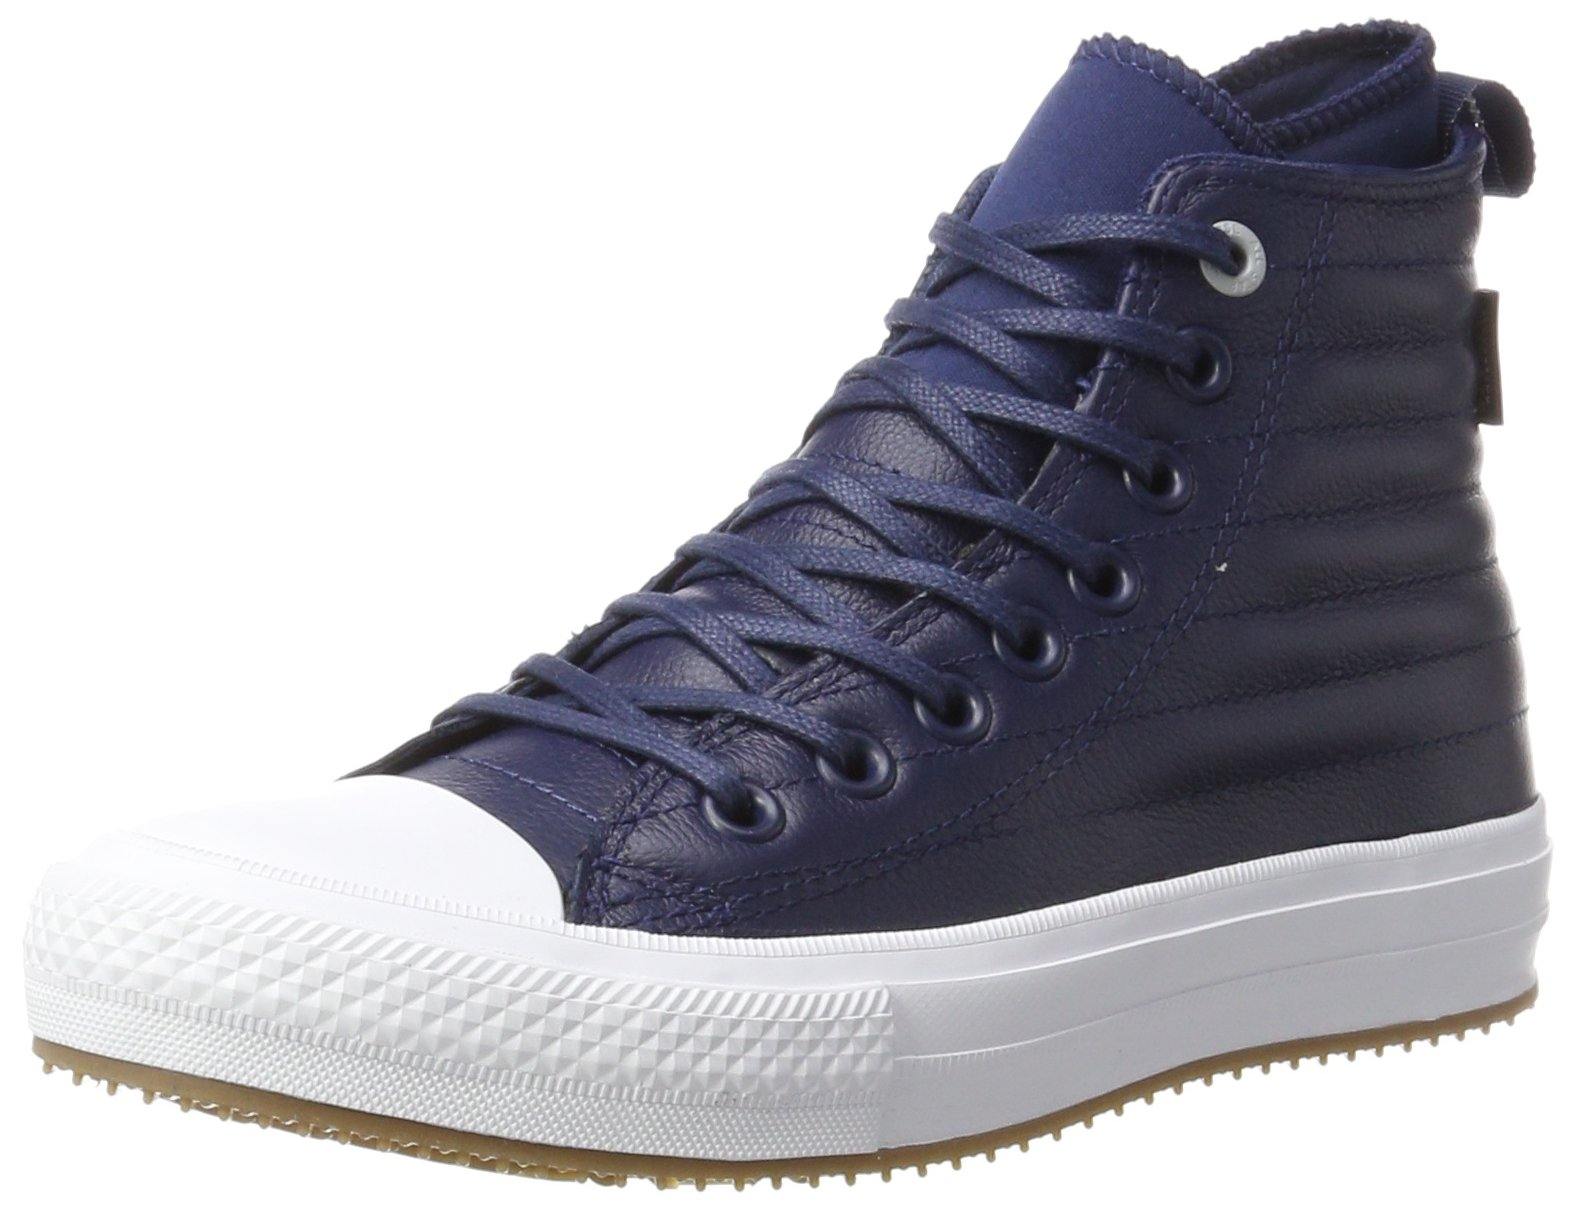 Converse Chuck Taylor All Star WP Boot - Hi Midnight Navy/Wolf Grey Lace-up Boots Climate Counter (10 D(M) US)